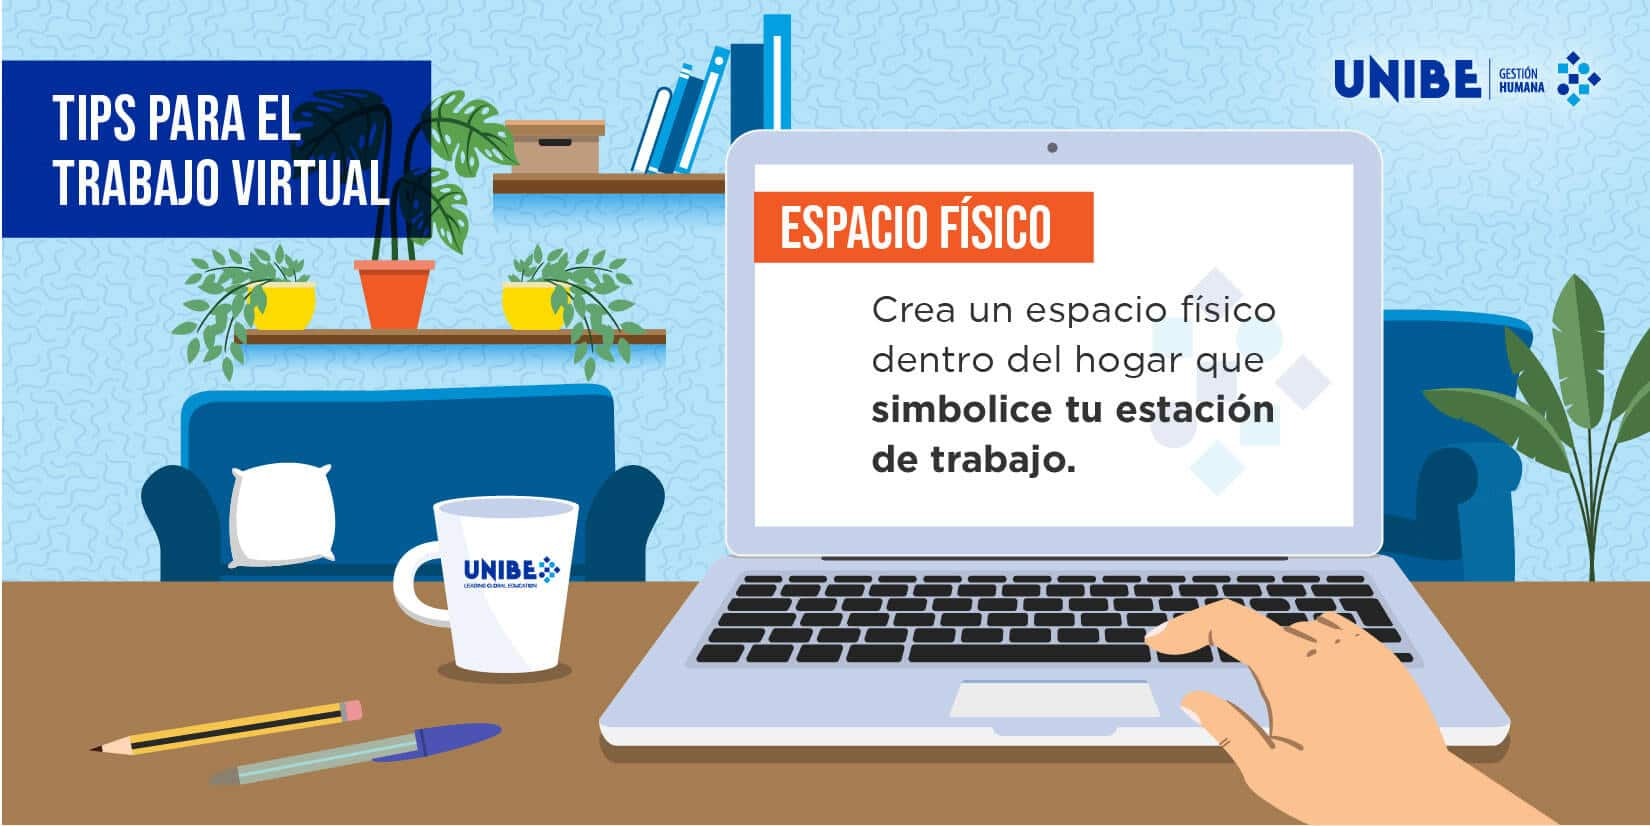 TIPS PARA EL TRABAJO VIRTUAL